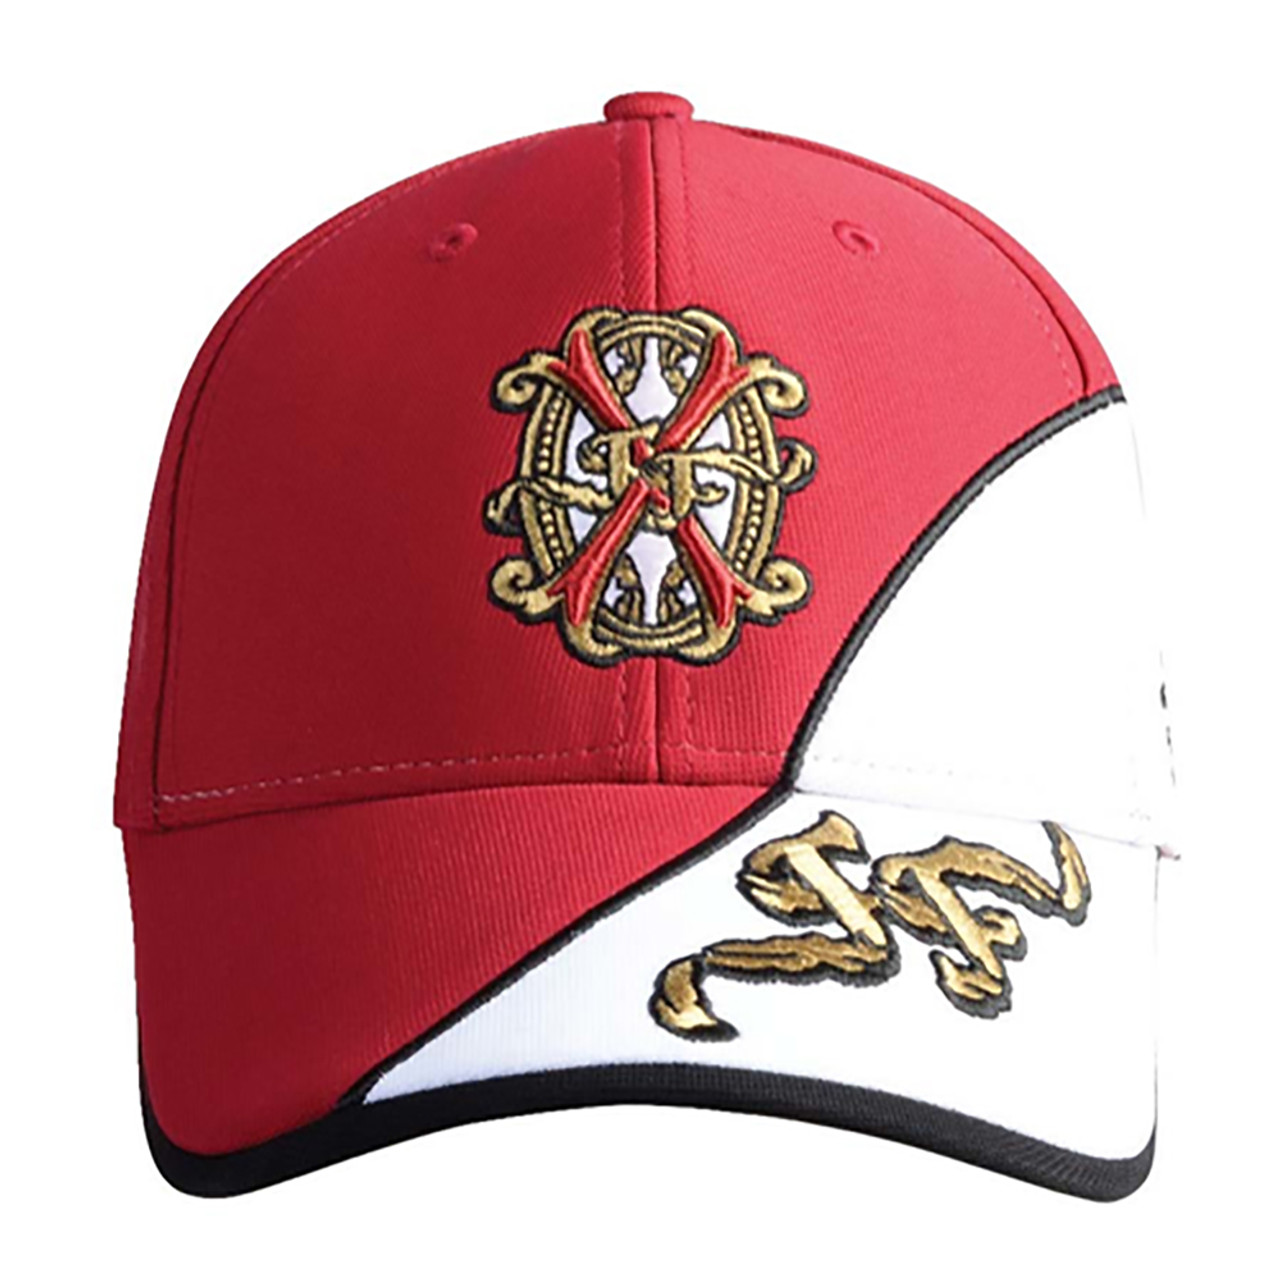 2eb20463d2f Arturo Fuente Opus X Baseball Hat - White and Red  11675.1529821399.jpg c 2 imbypass on